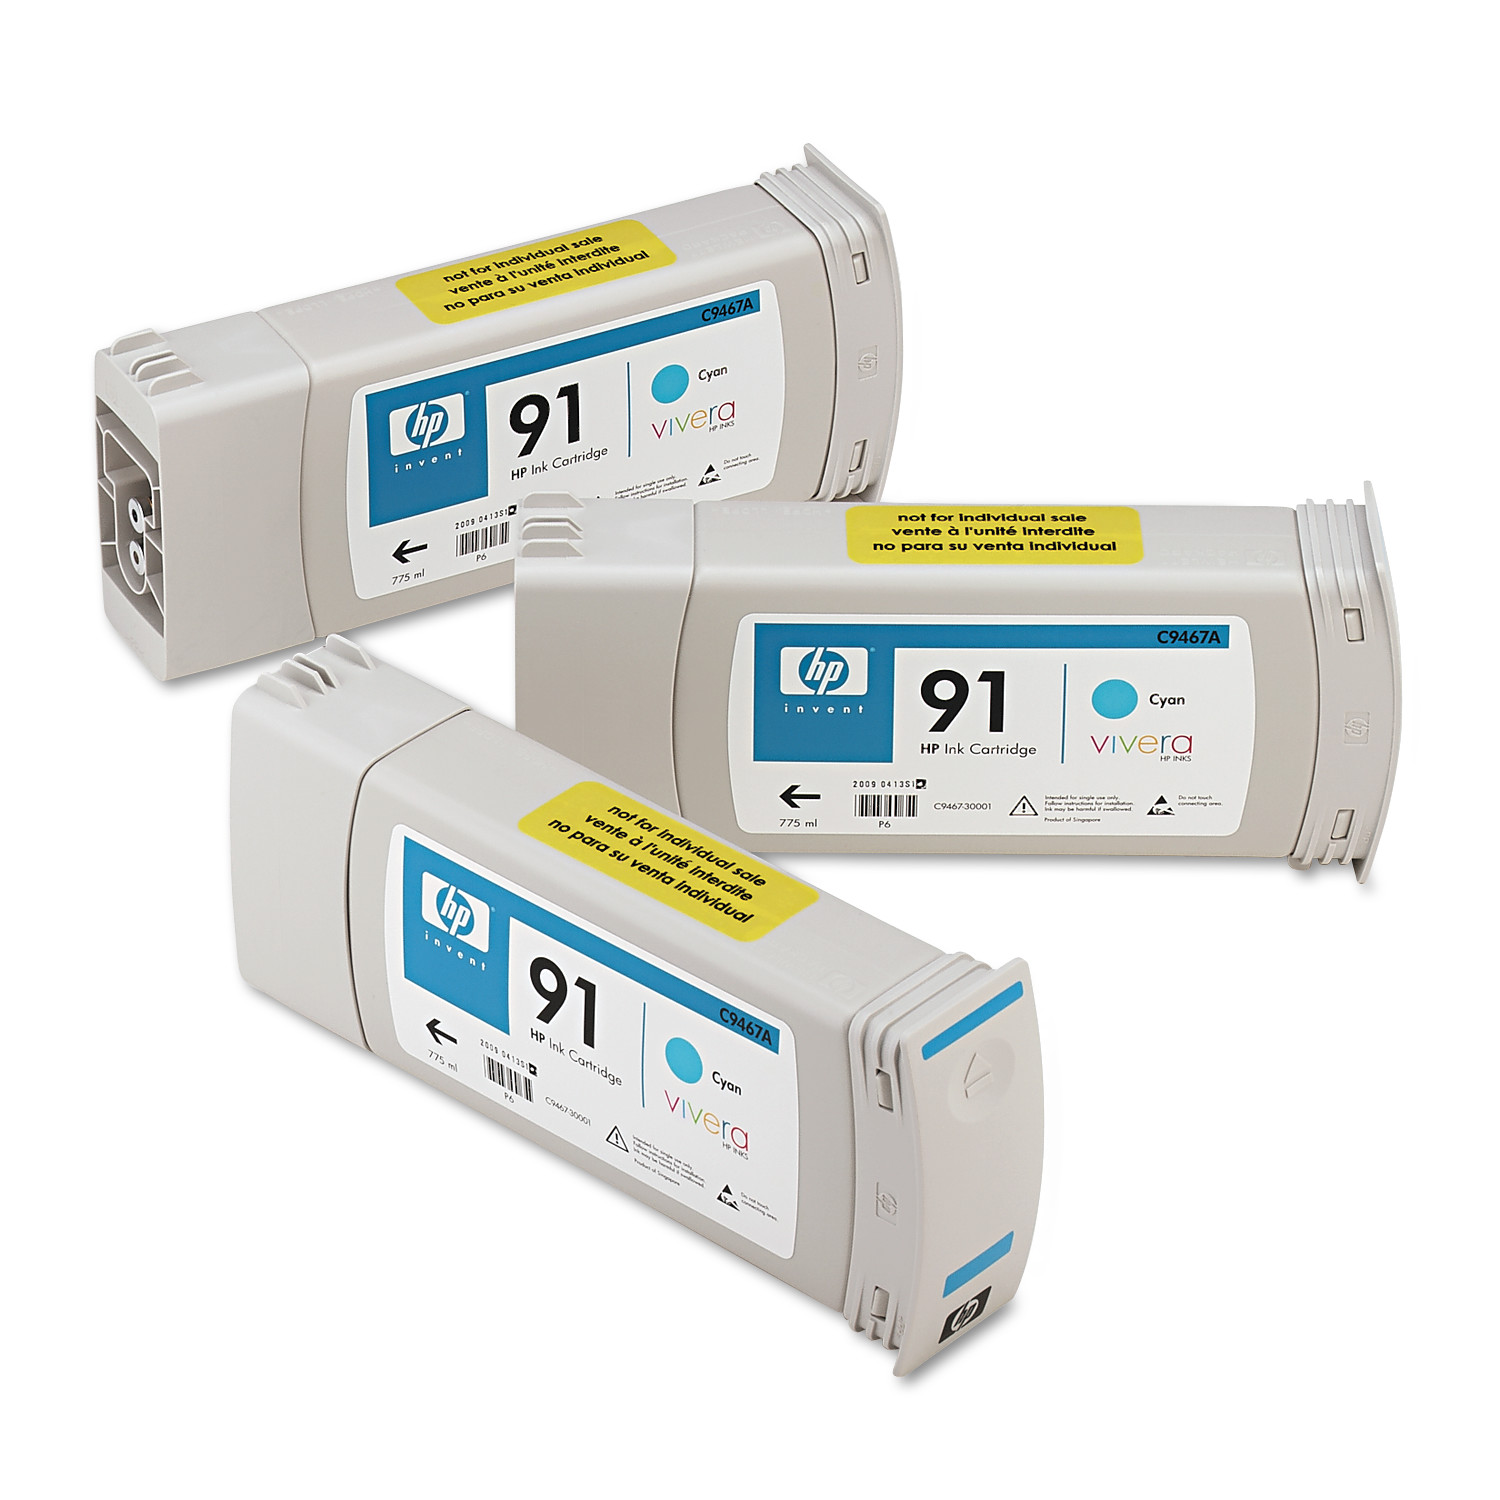 HP 91, (C9483A) 3-pack Cyan Original Ink Cartridges